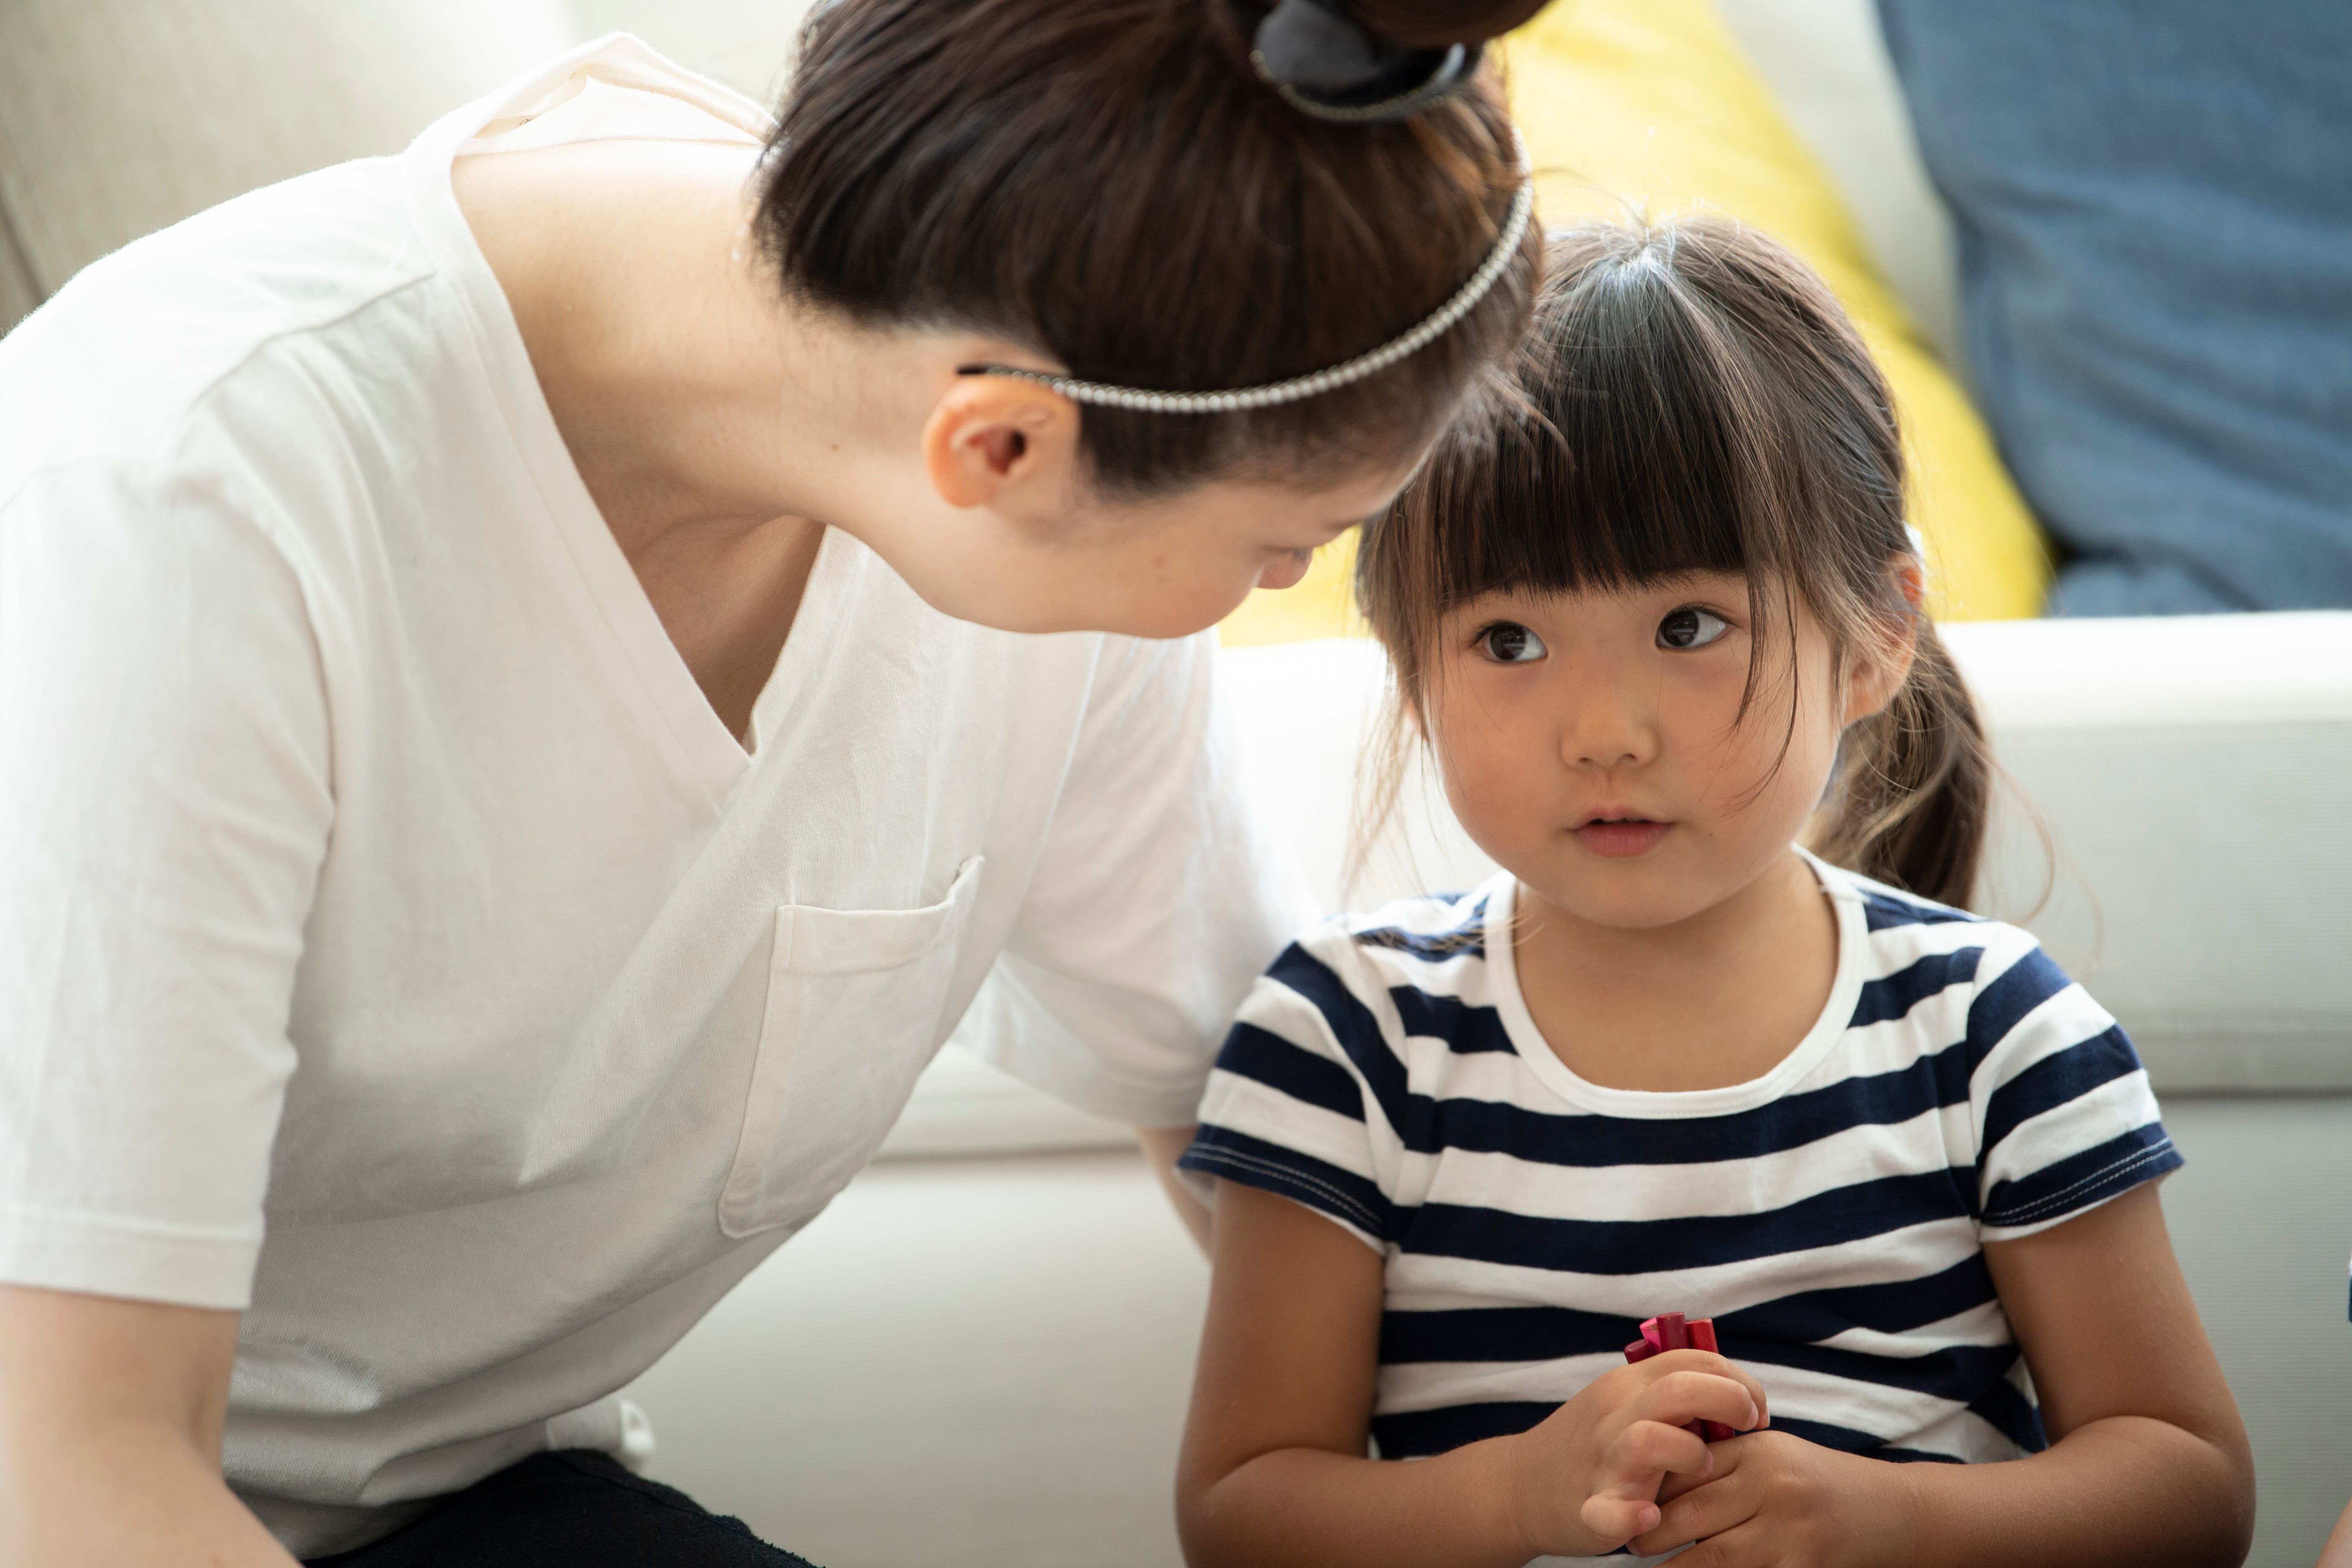 Why You Should Teach Your Kids The Real Words For Private